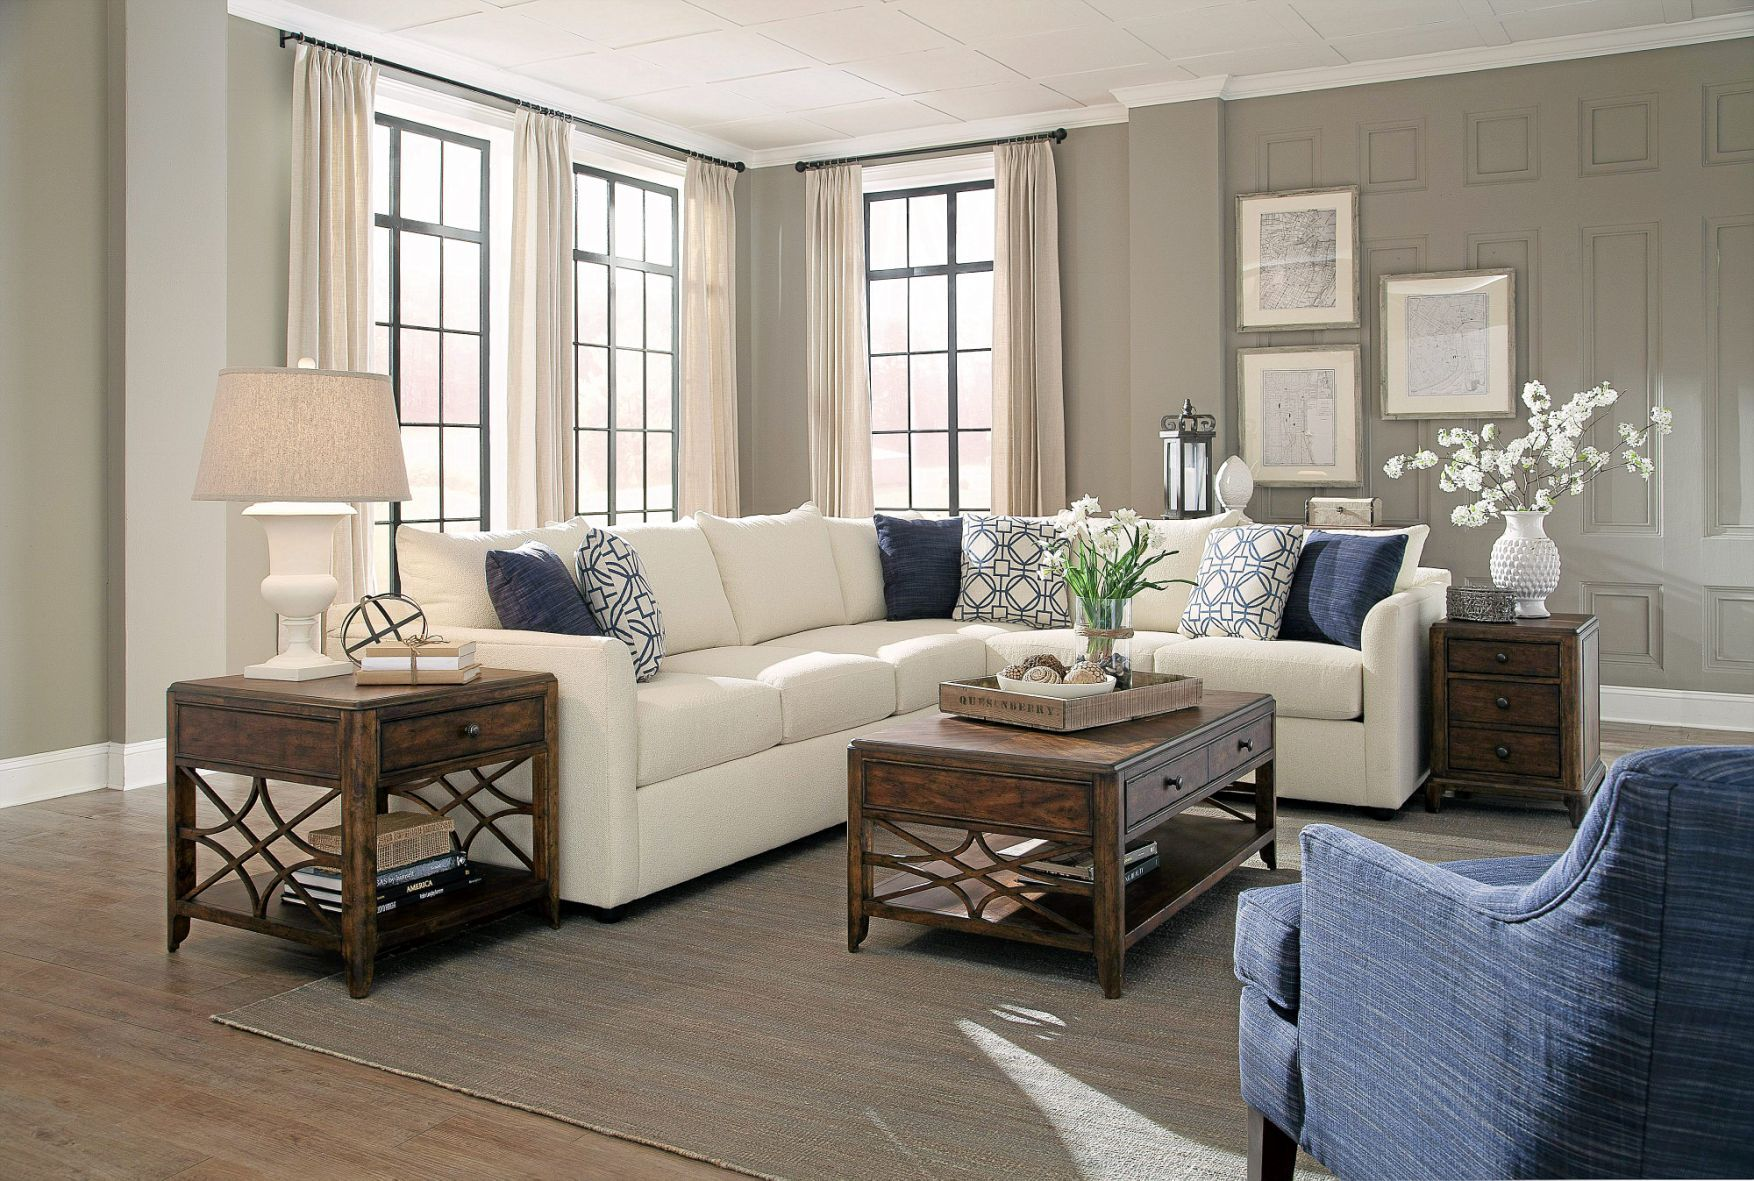 Trisha Yearwood Furniture Line Is Available In Tulsa